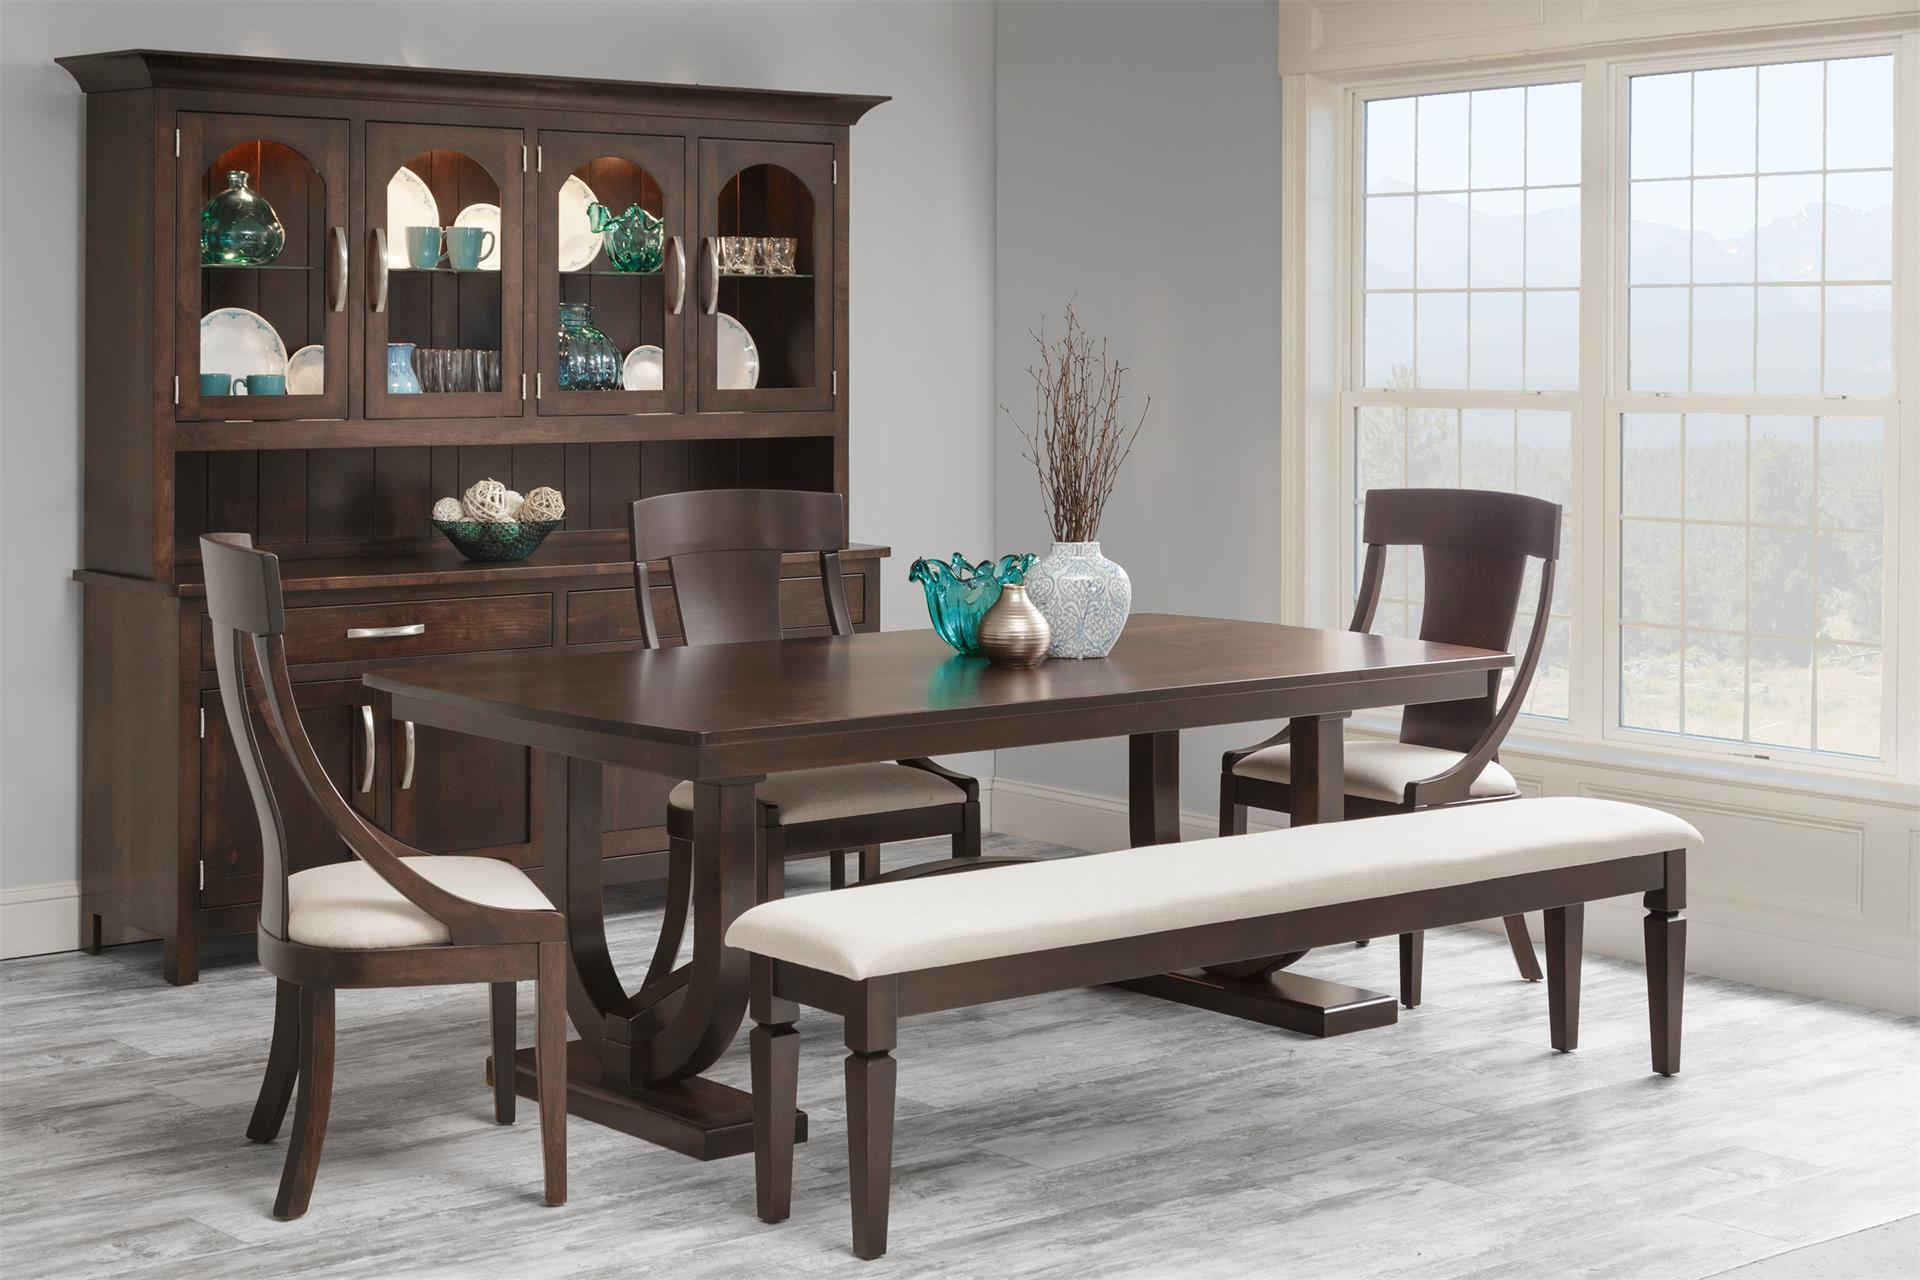 Georgetown Double Trestle Dining Table From DutchCrafters Amish - Double trestle dining table